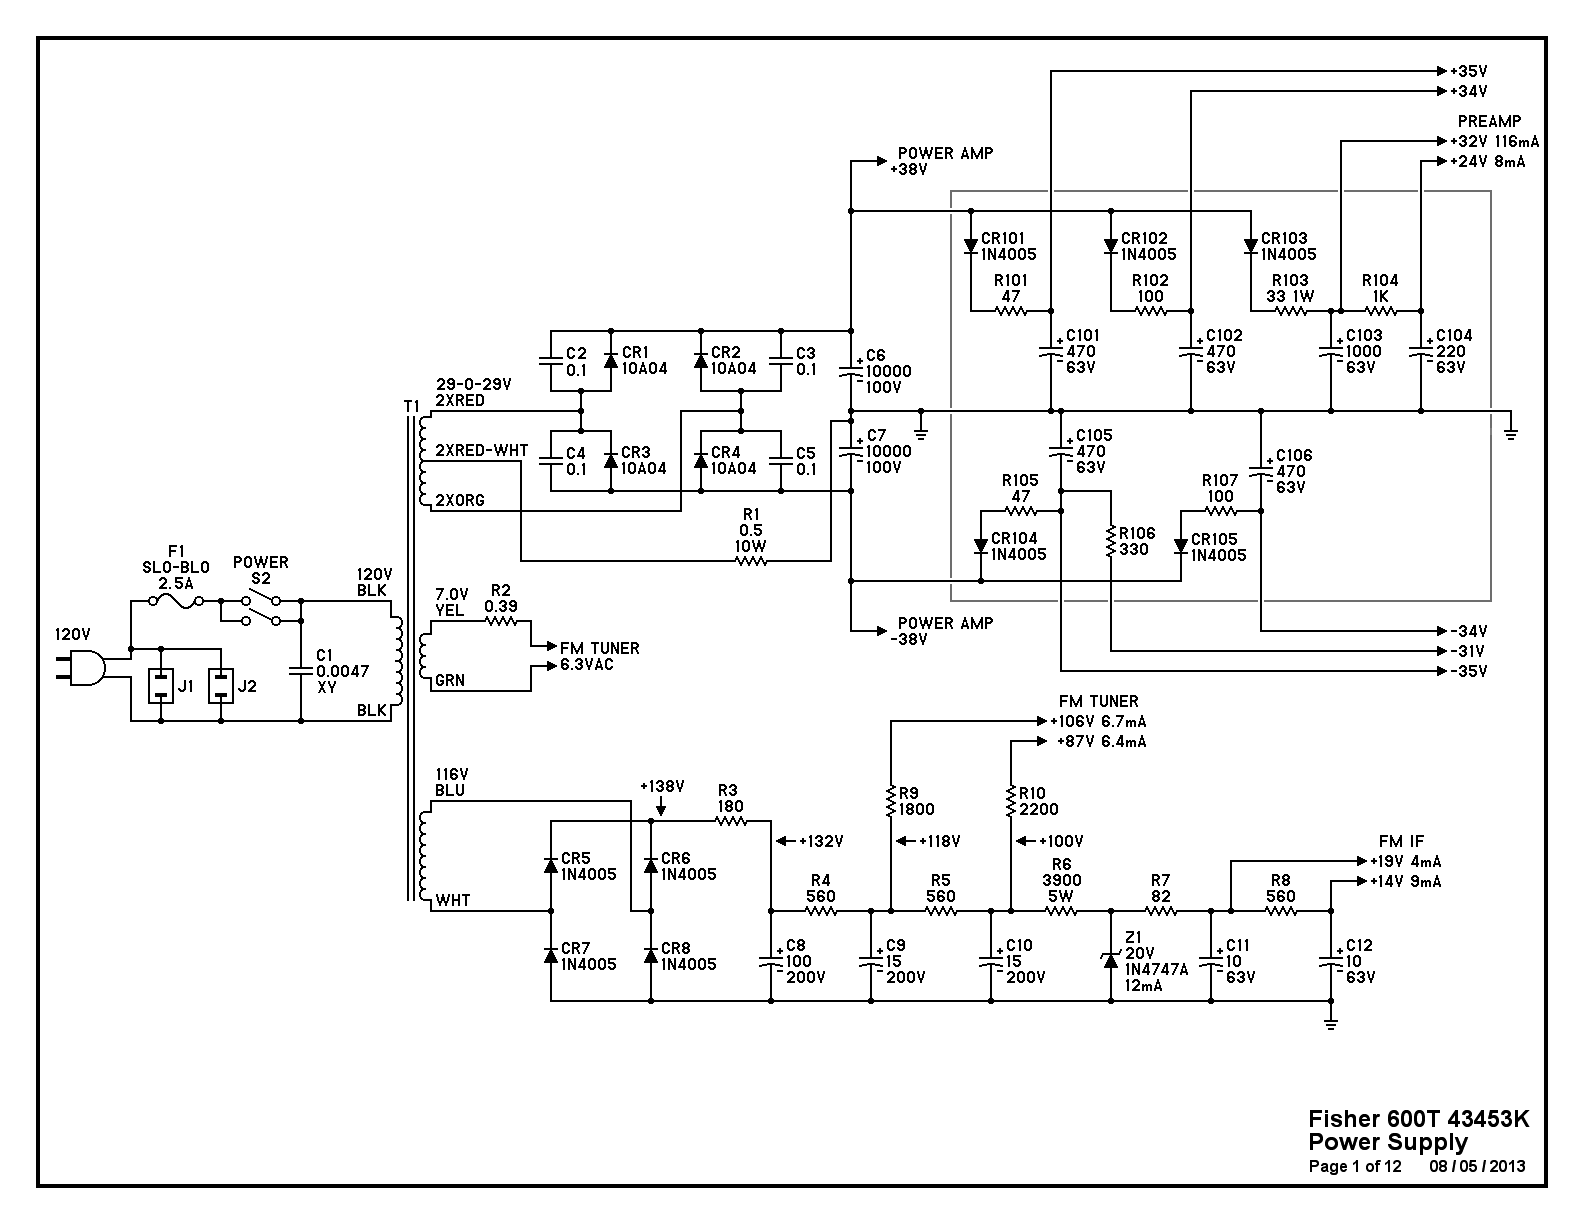 fisher 600 t restorations page 2 audiokarma home audio stereo here are the 12 pages of the revised schematic diagram pages 1 2 power supply and 9 10 phono preamp have significant changes from the original circuit